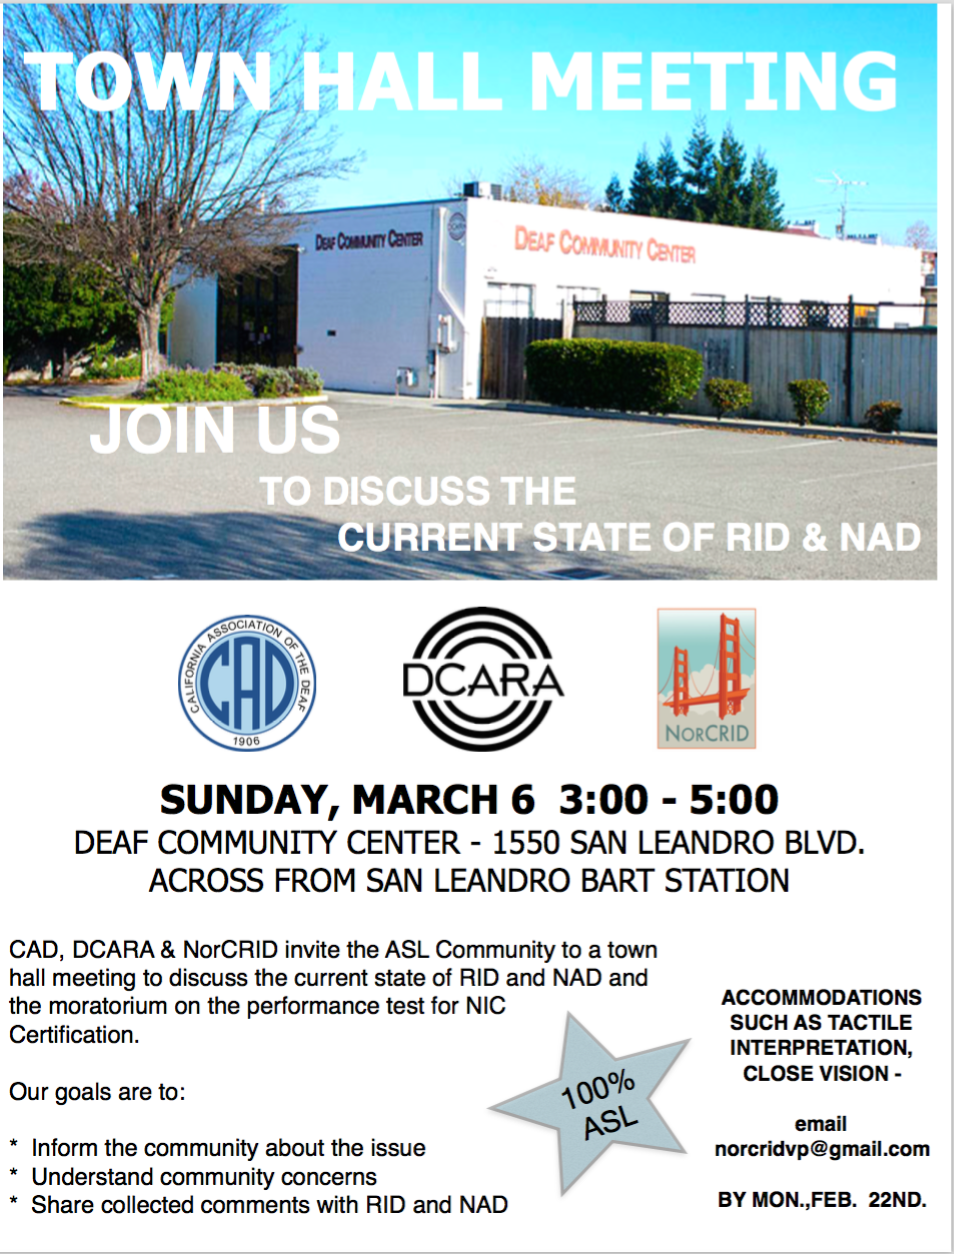 Town Hall Meeting Flyer- image of DCC, logos for NAD, DCARA and NorCRID. All text is also displayed below